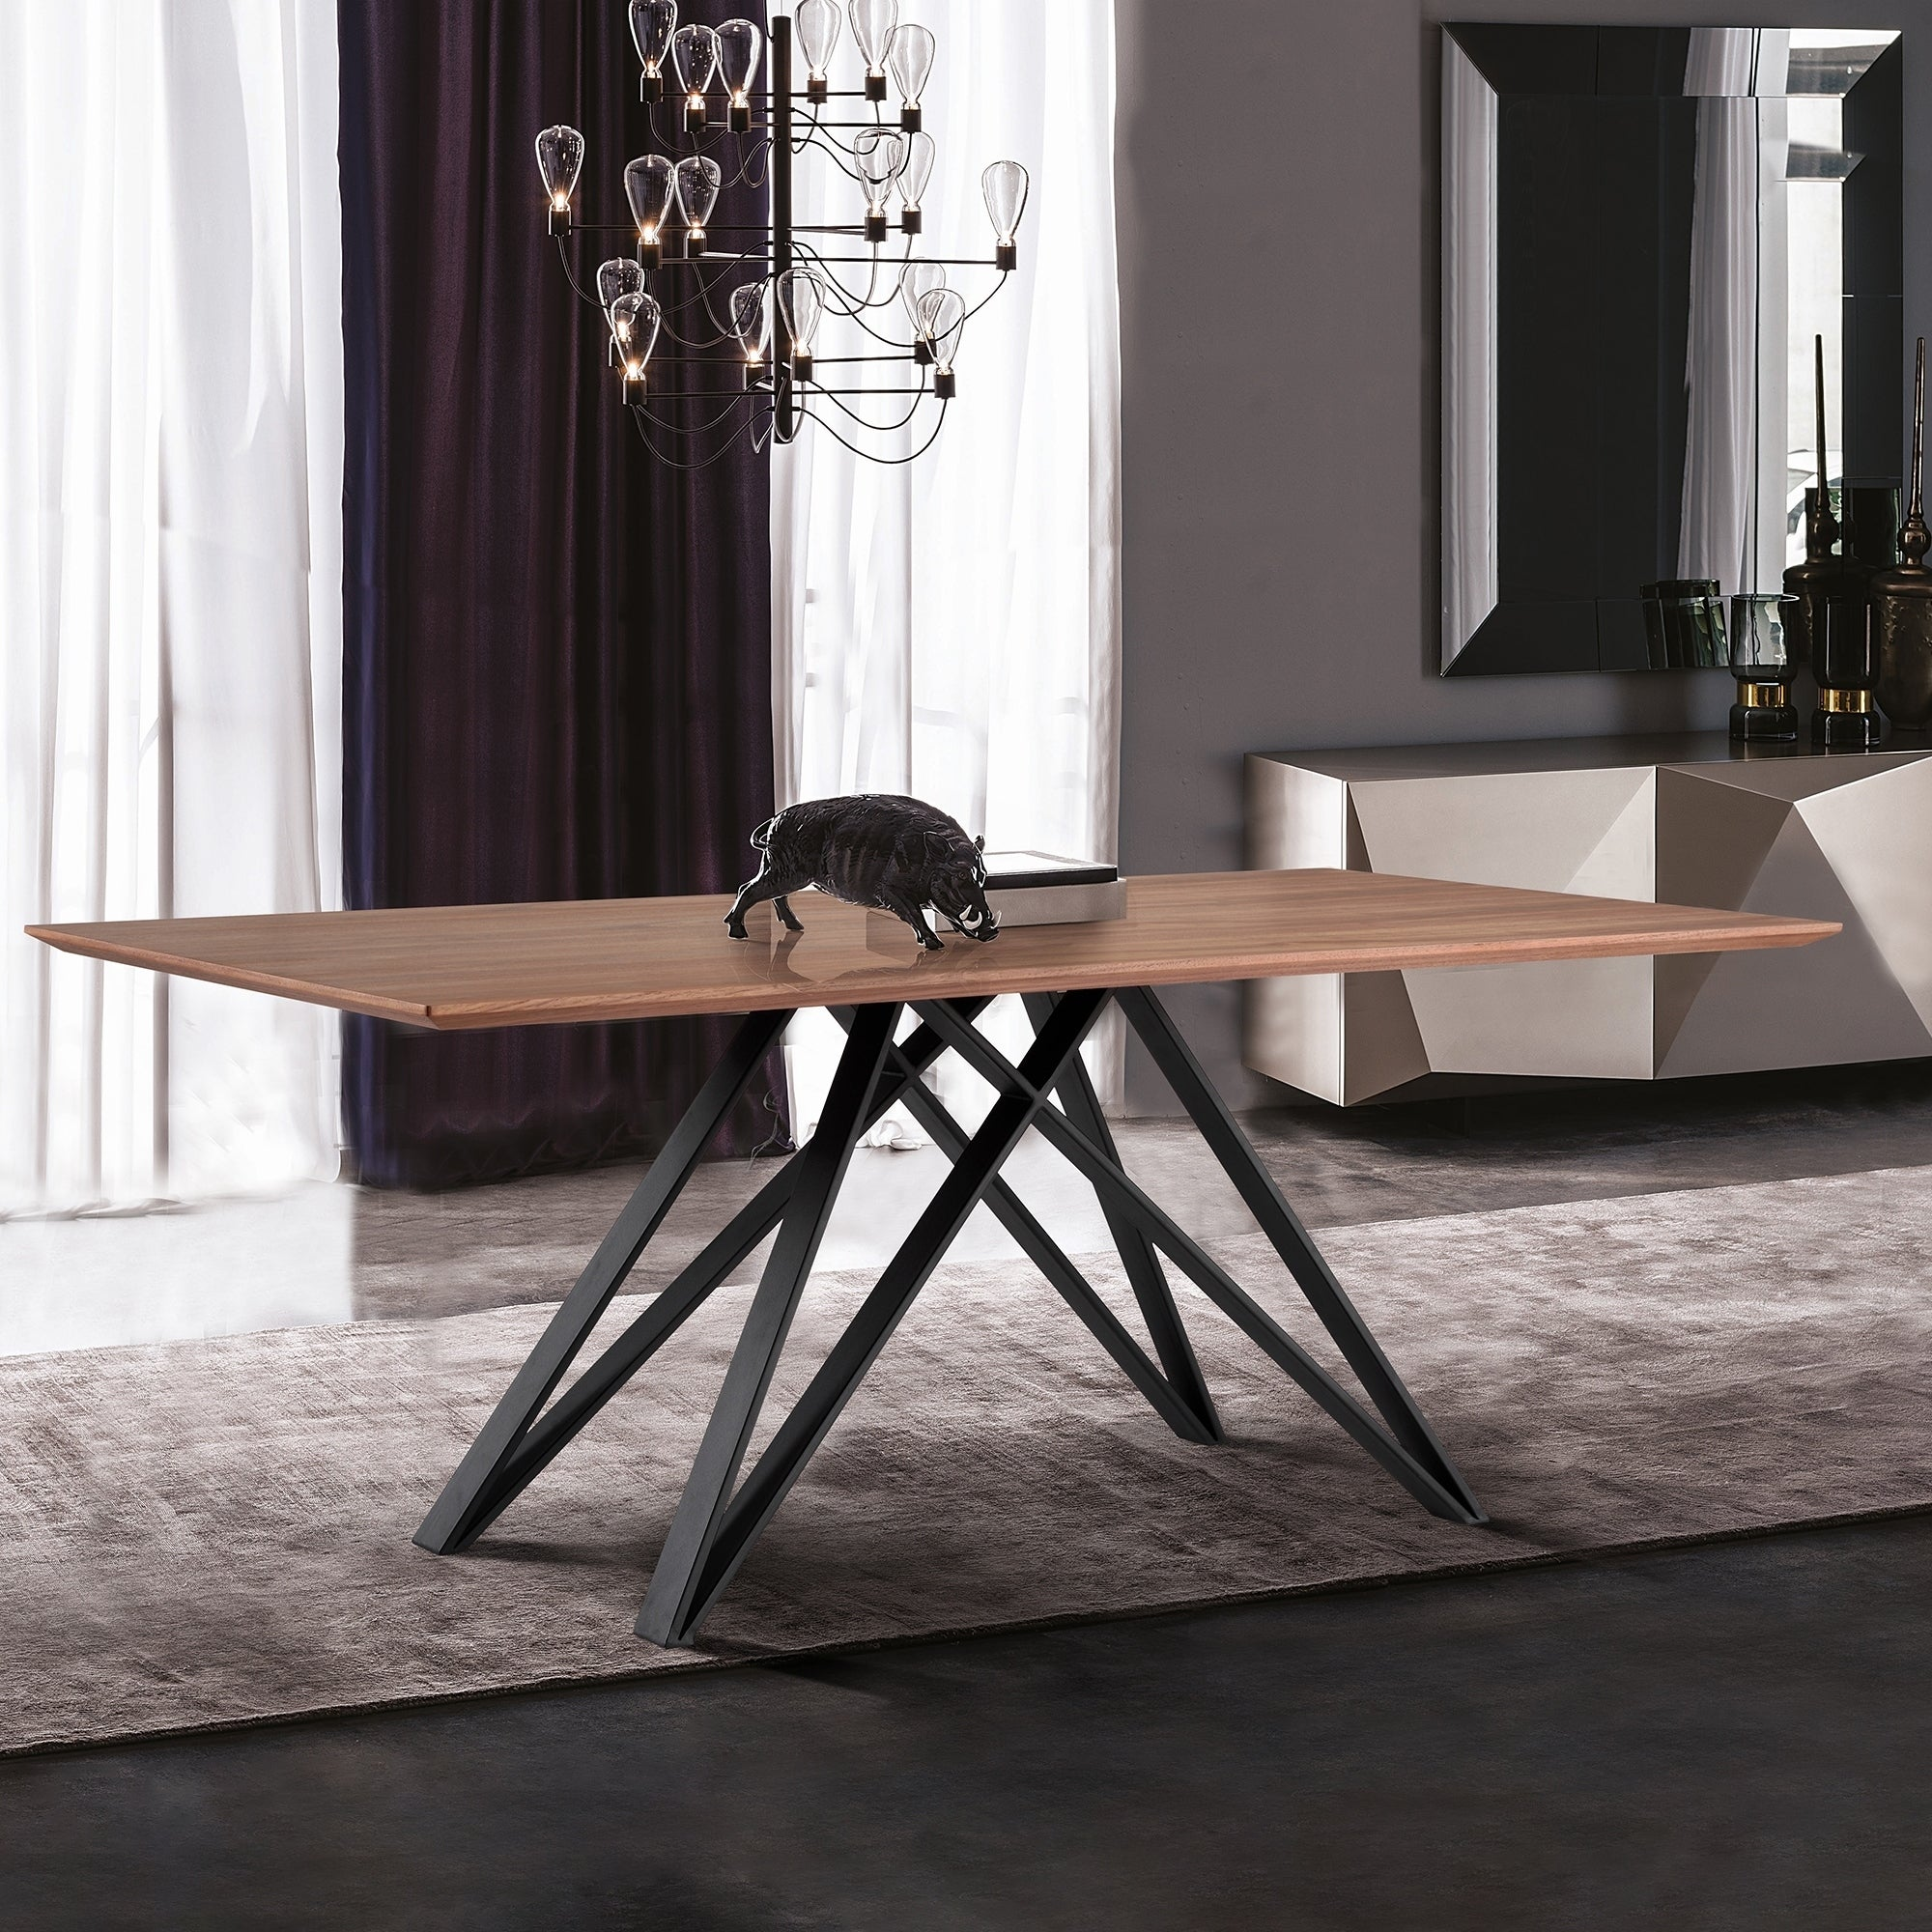 Modena contemporary dining table in matte black finish and walnut wood top brown